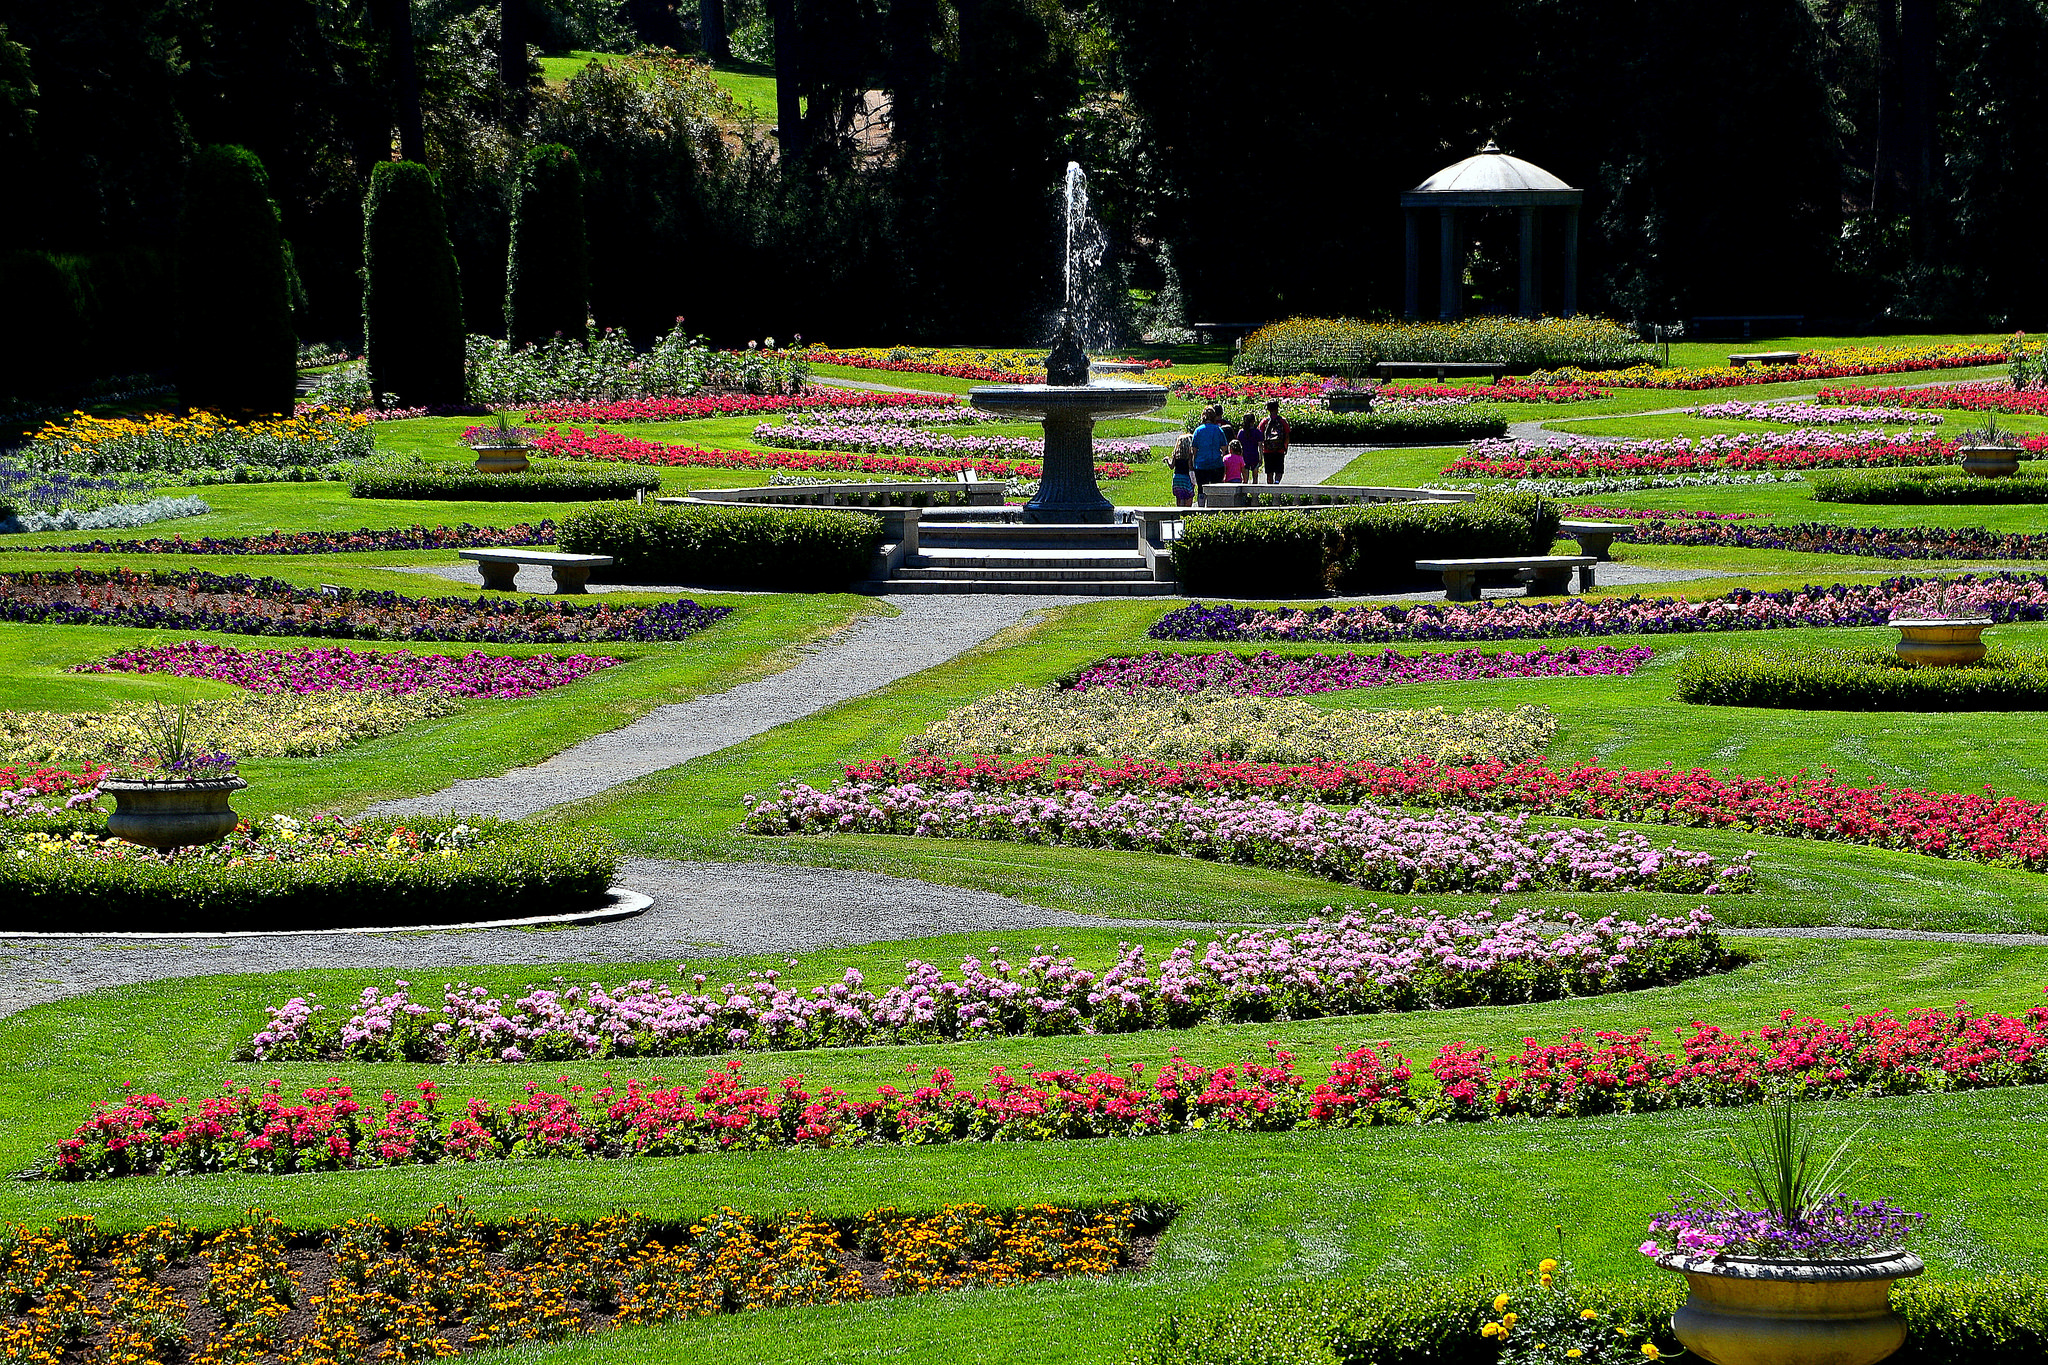 Manito Park has an amazing rose garden, conservatory, English style annual garden and an unbelievable Dahlia garden in late summer. Plus a Japanese garden. (Image: Keith Ewing / https://flic.kr/p/KLBJzS)